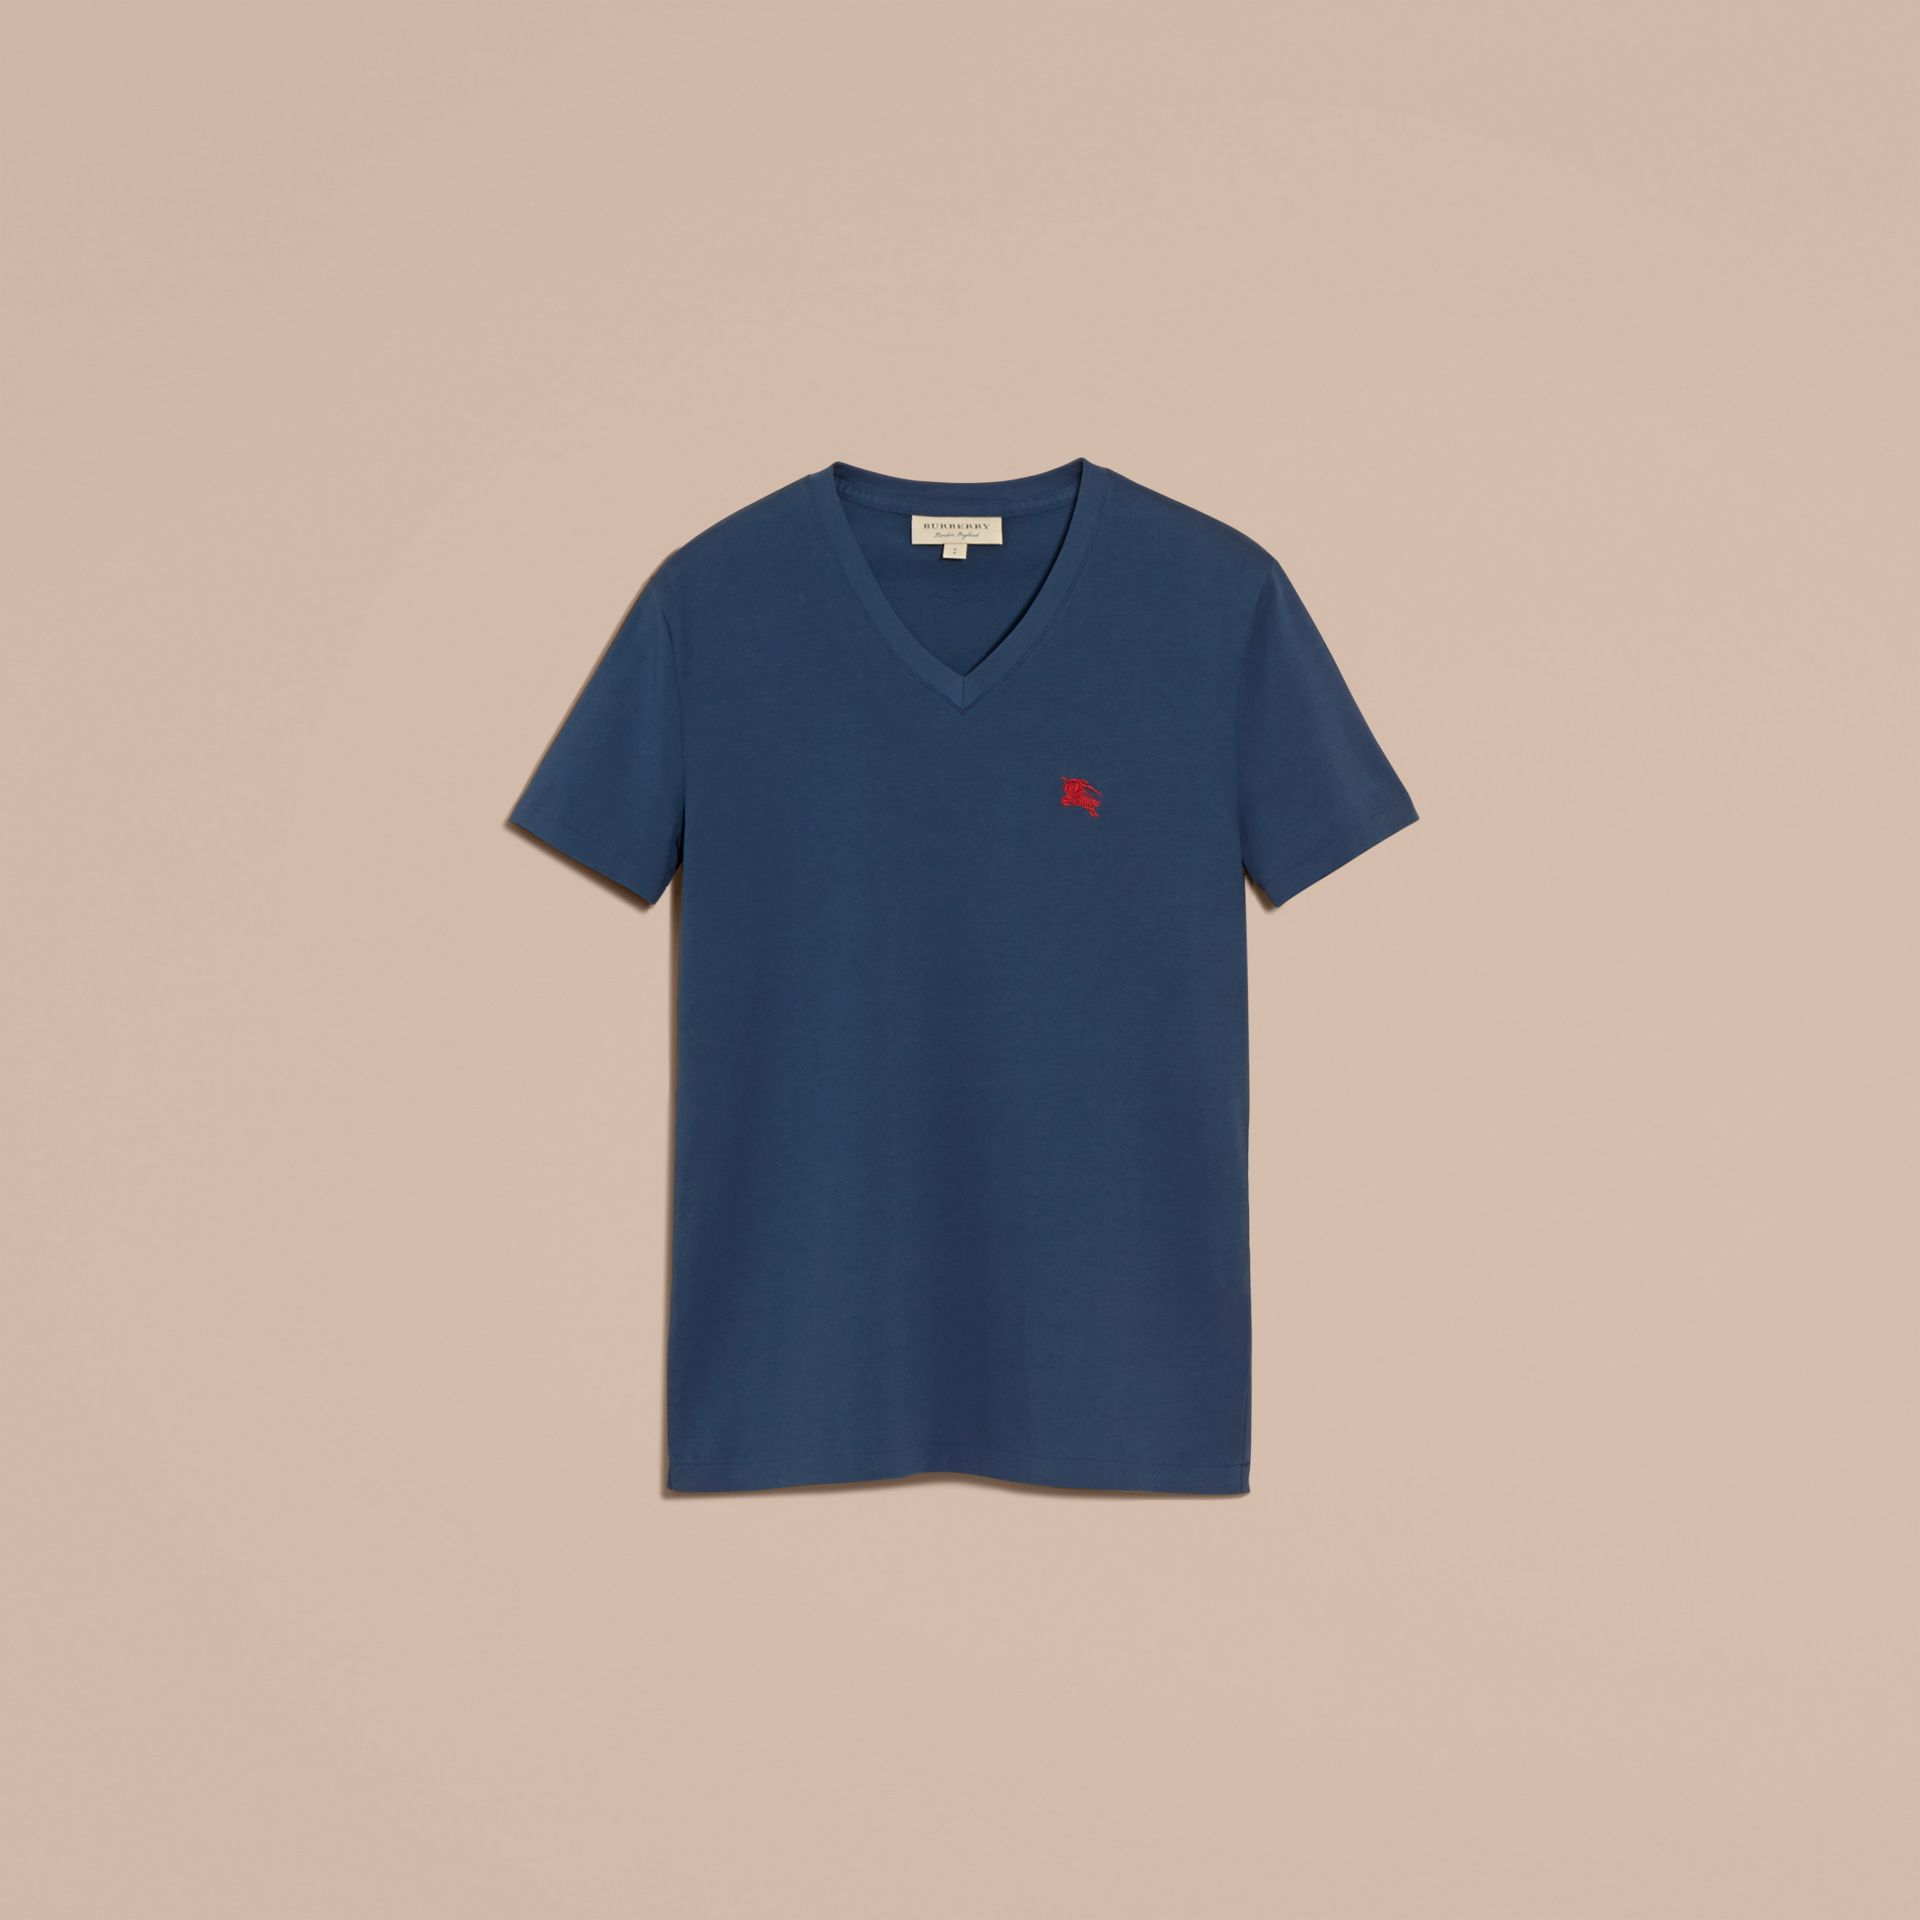 Navy Cotton V-neck T-shirt Navy - gallery image 4